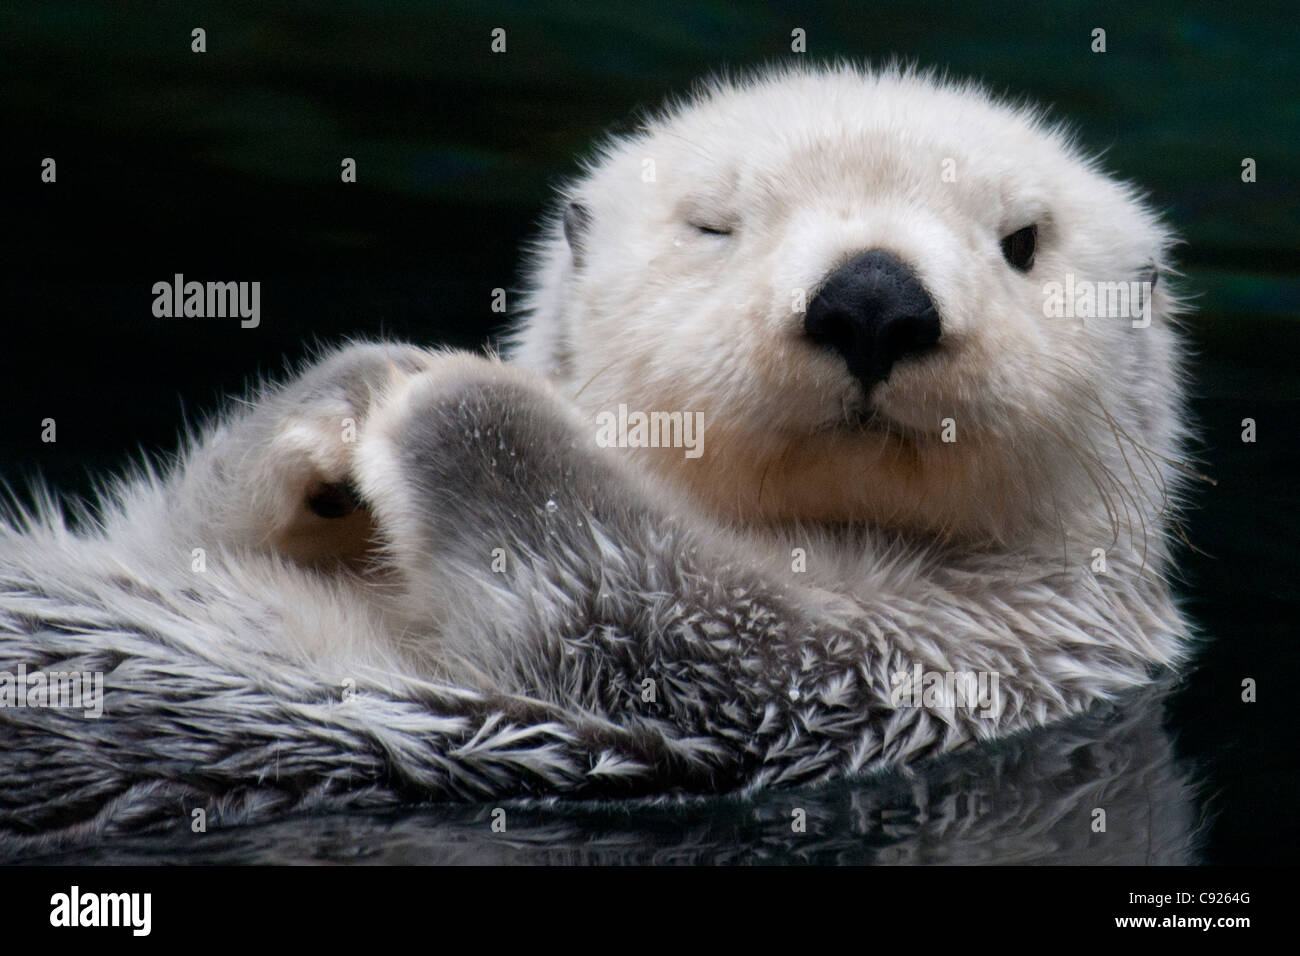 CAPTIVE Close up of a sea otter floating on its back, Point Defiance Zoo, Tacoma, Washington USA - Stock Image